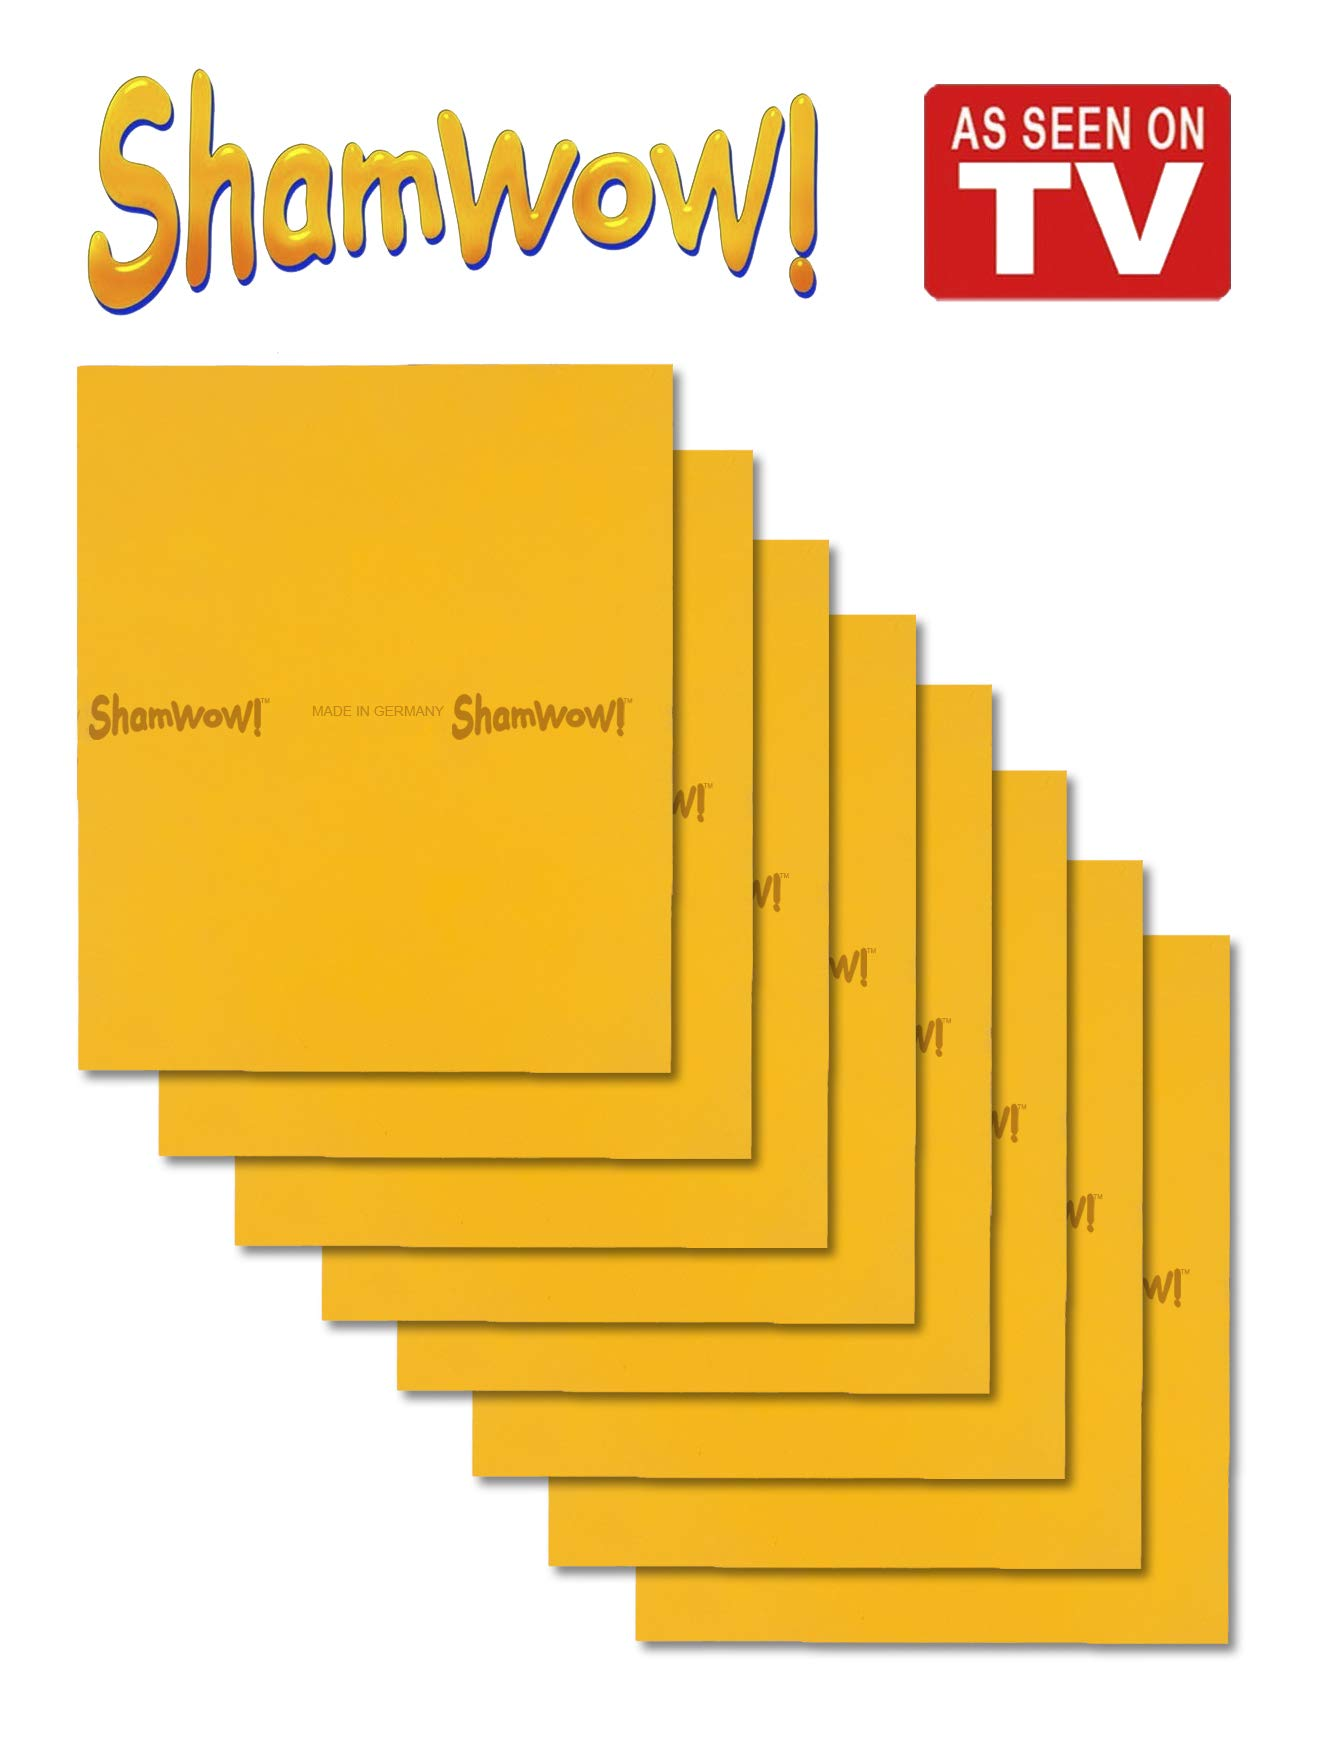 ShamWow The Original Super Absorbent Multi-Purpose Cleaning Shammy (Chamois) Towel Cloth, Machine Washable, Will Not Scratch, Orange (8 Pack)